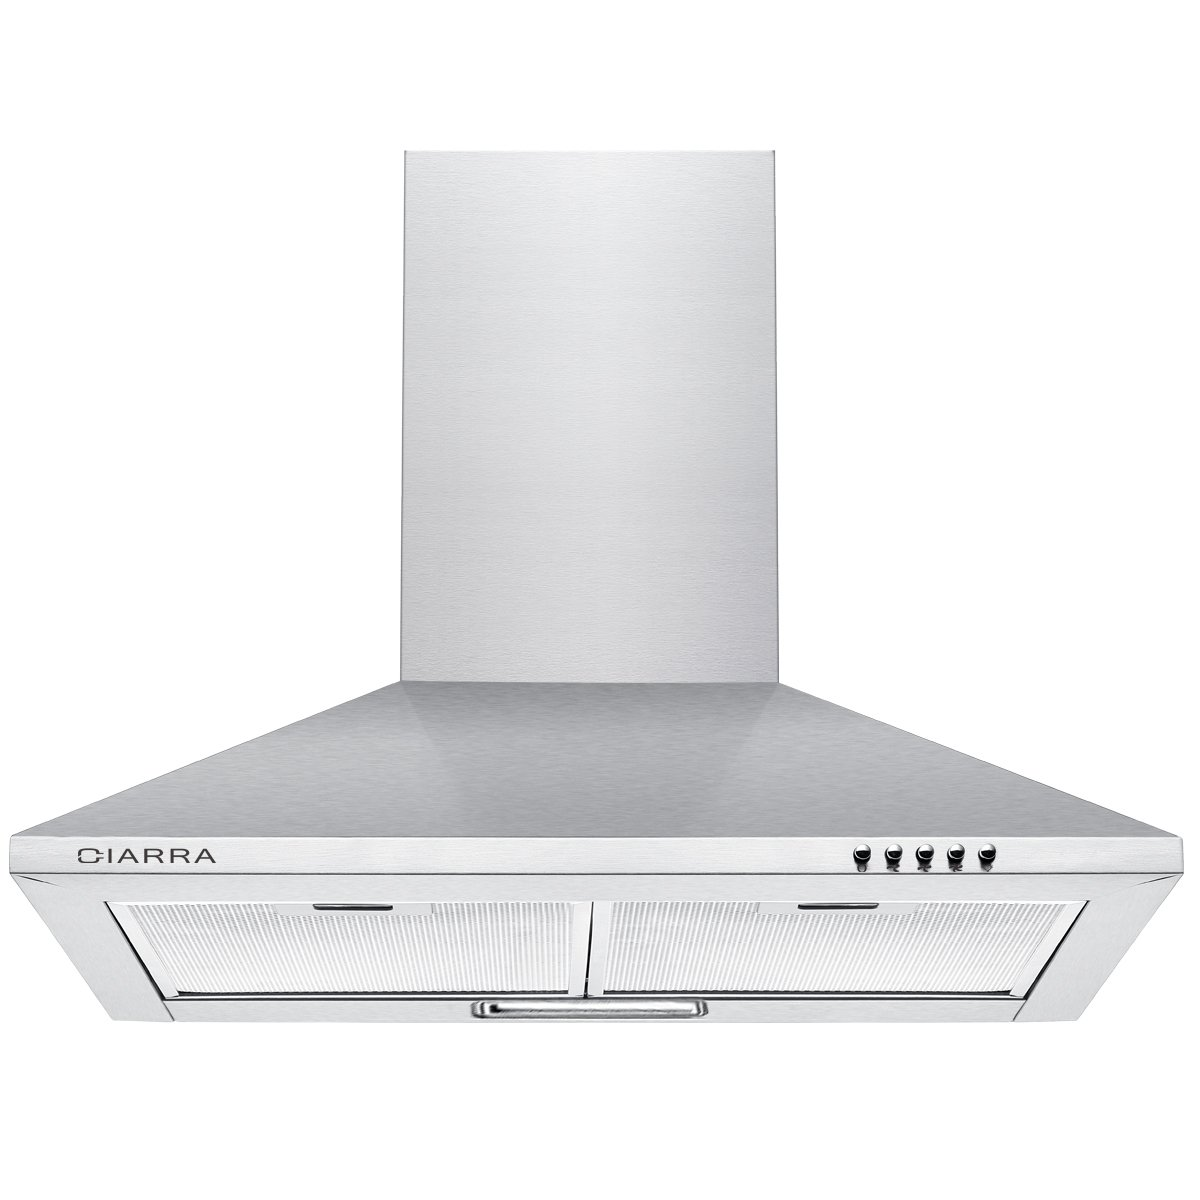 CIARRA Cooker Hoods 60cm Stainless Steel Chimney Range Hood 600mm Recirculating Duct Kitchen Ventilation Extractor Fan with Grease Aluminum Filters Silver [Energy Class C] CBCS6201